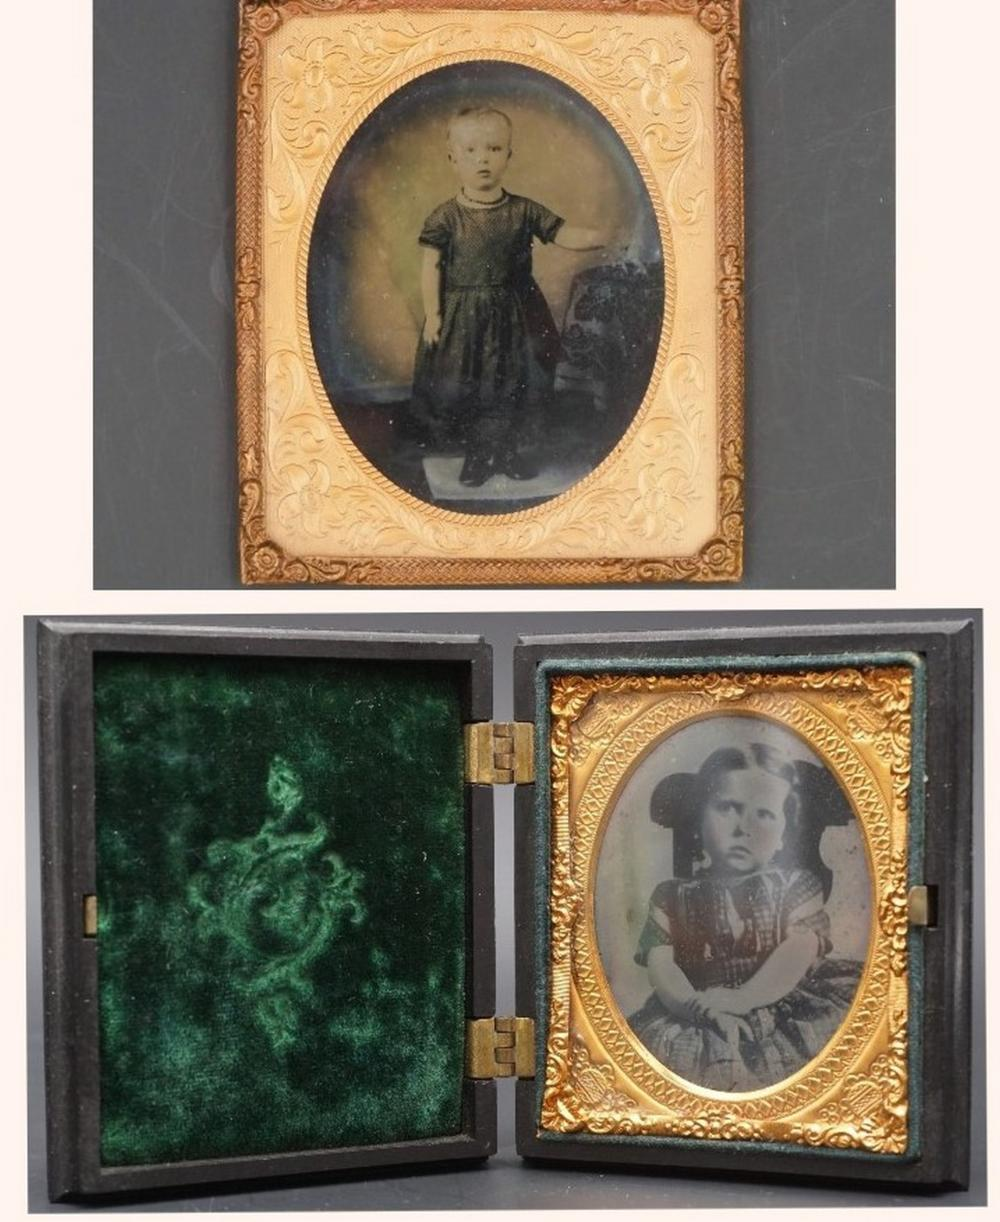 Antique daguerreotypes with children